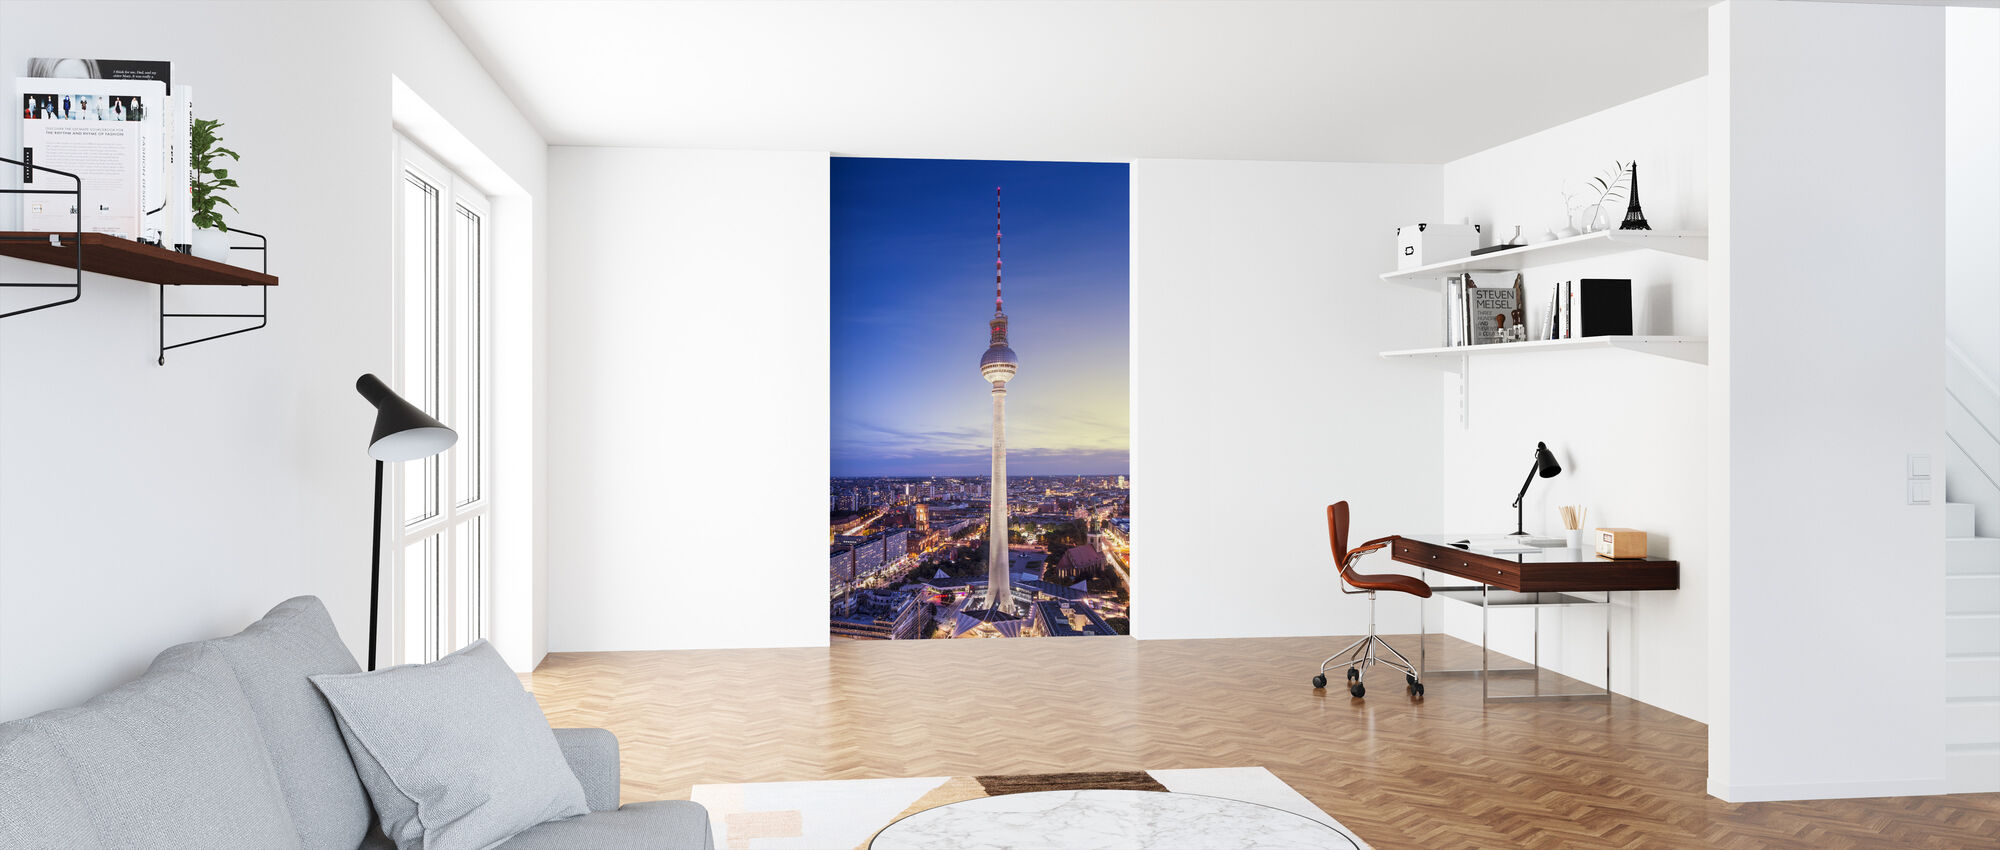 Berlin, Germany. View of TV tower - Wallpaper - Office